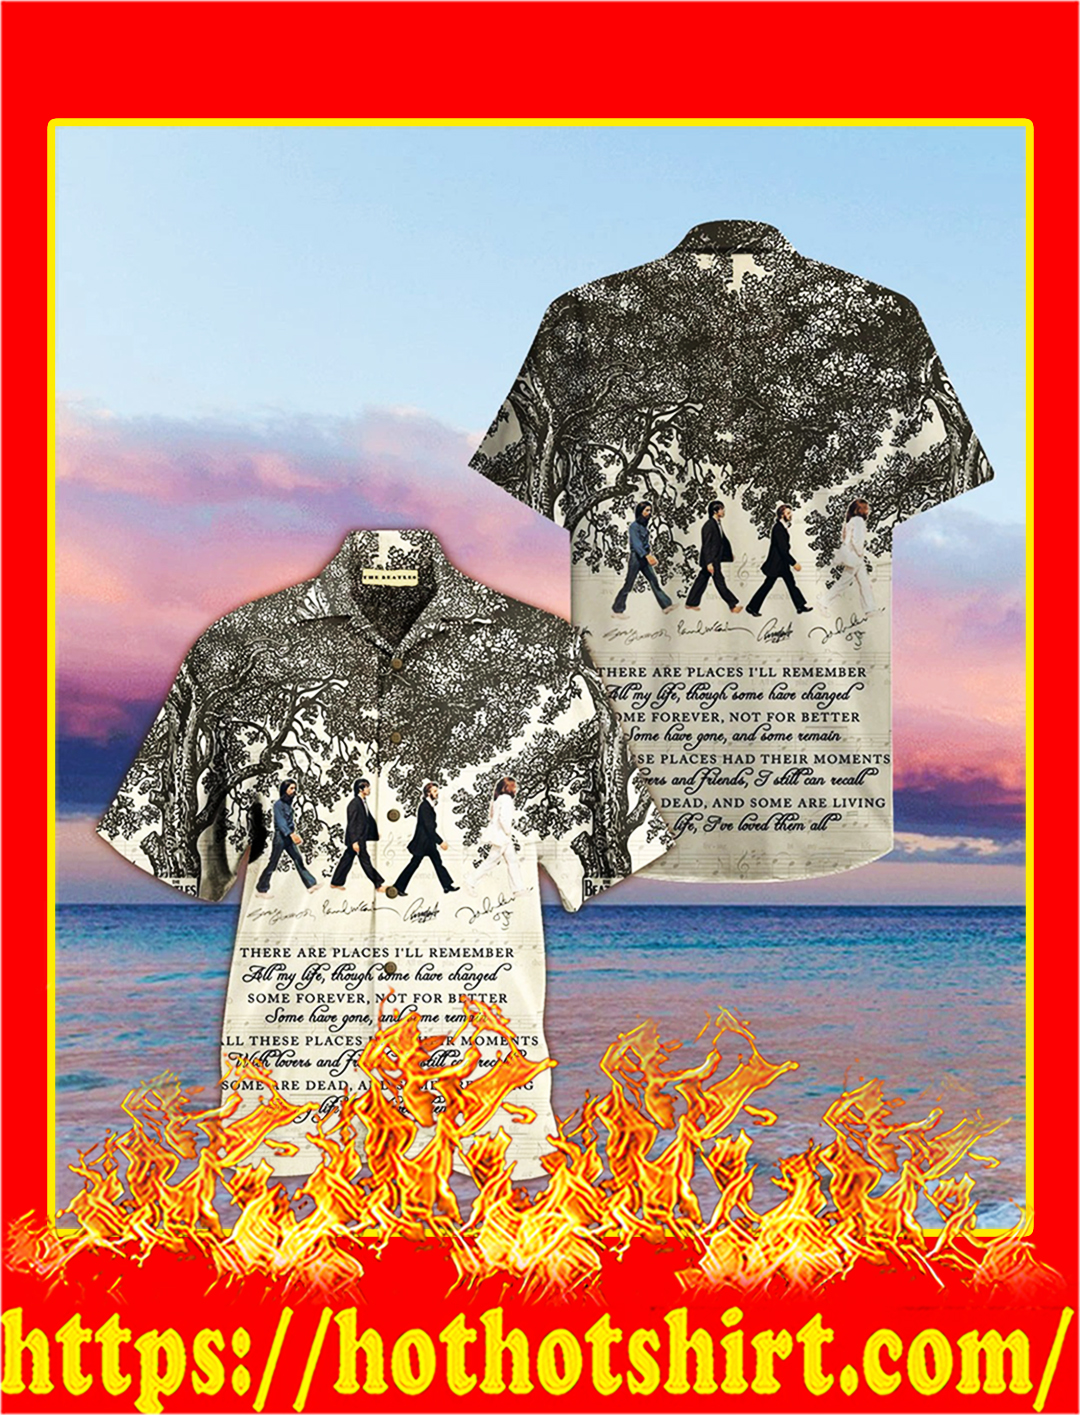 The beatles song lyrics there are places i'll remember hawaiian shirt- L